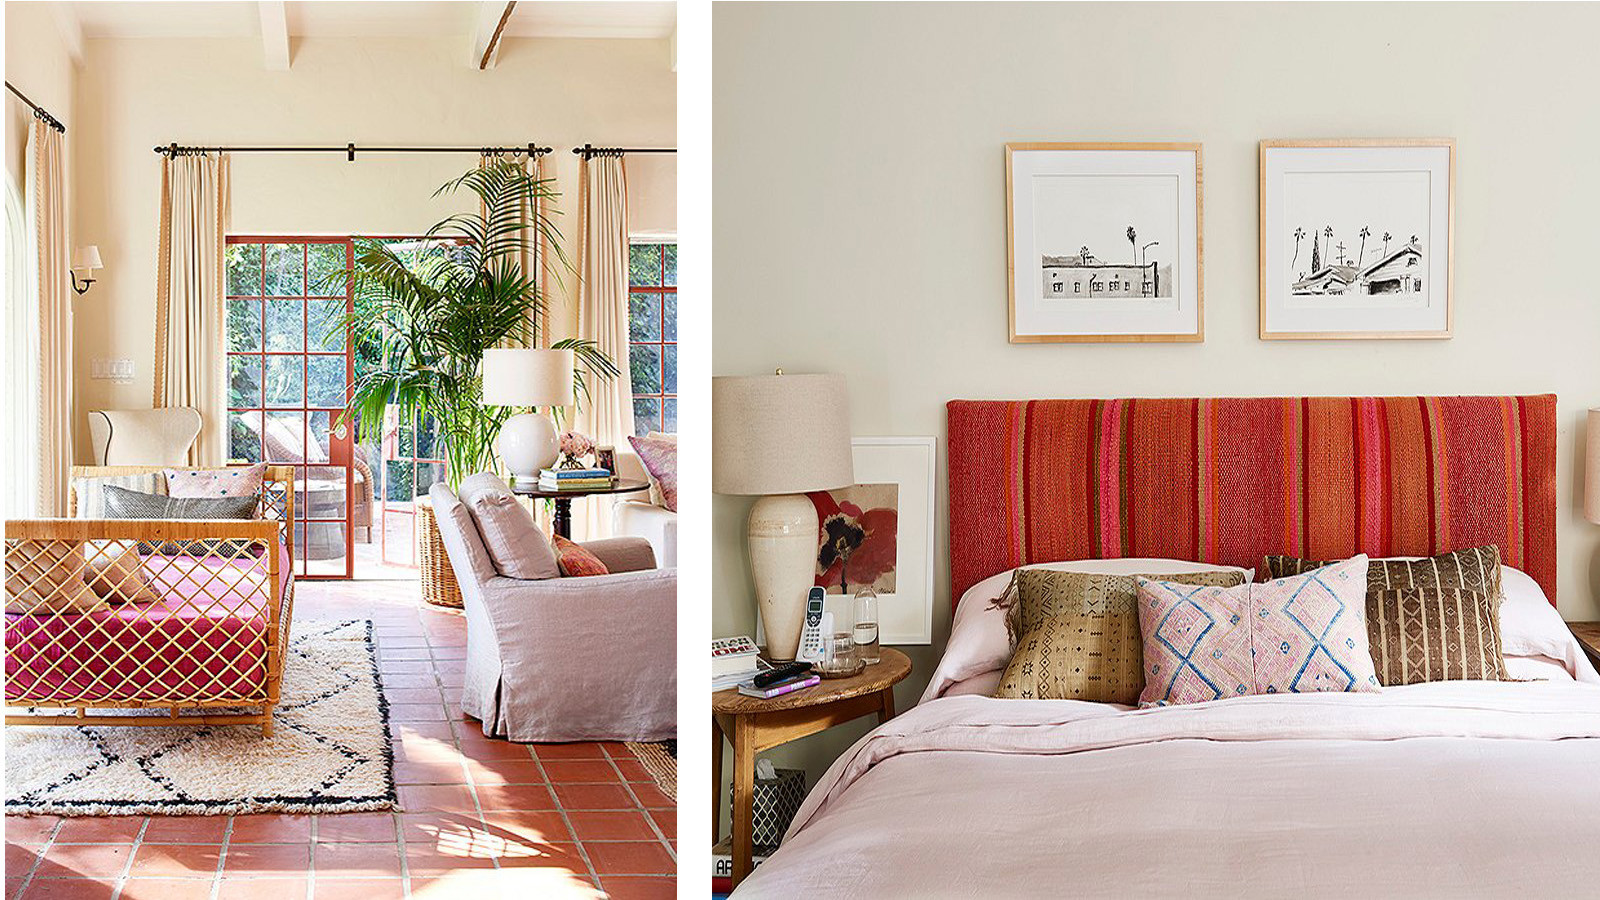 Shades of pink give the interiors a feminine feel.